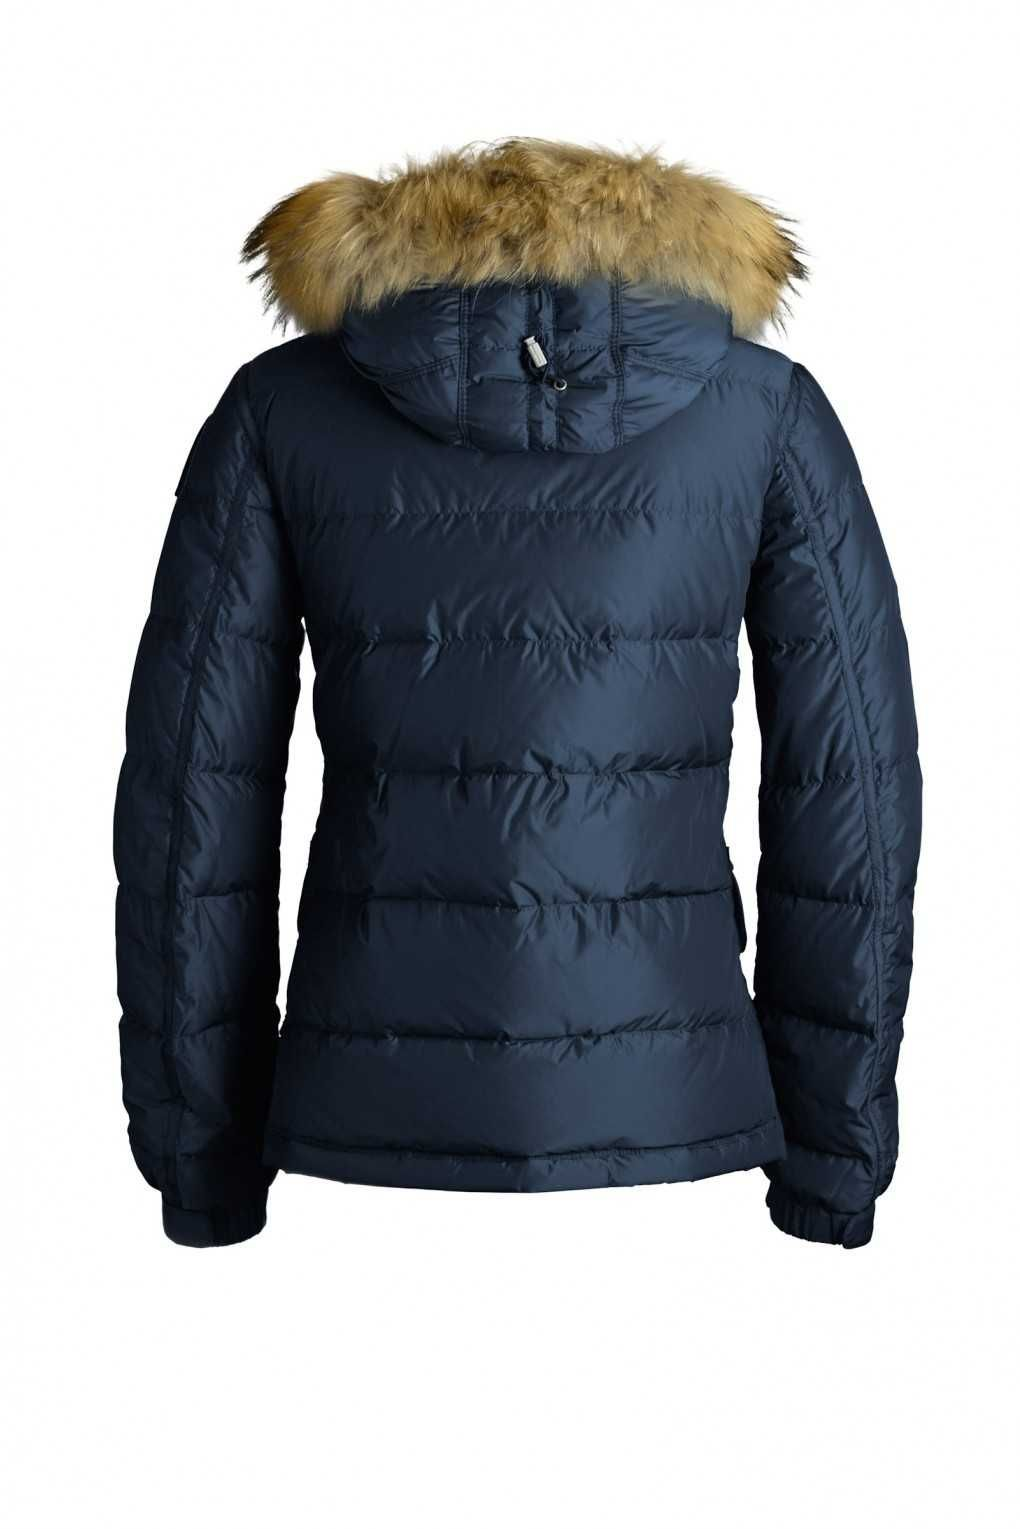 parajumpers wikipedia